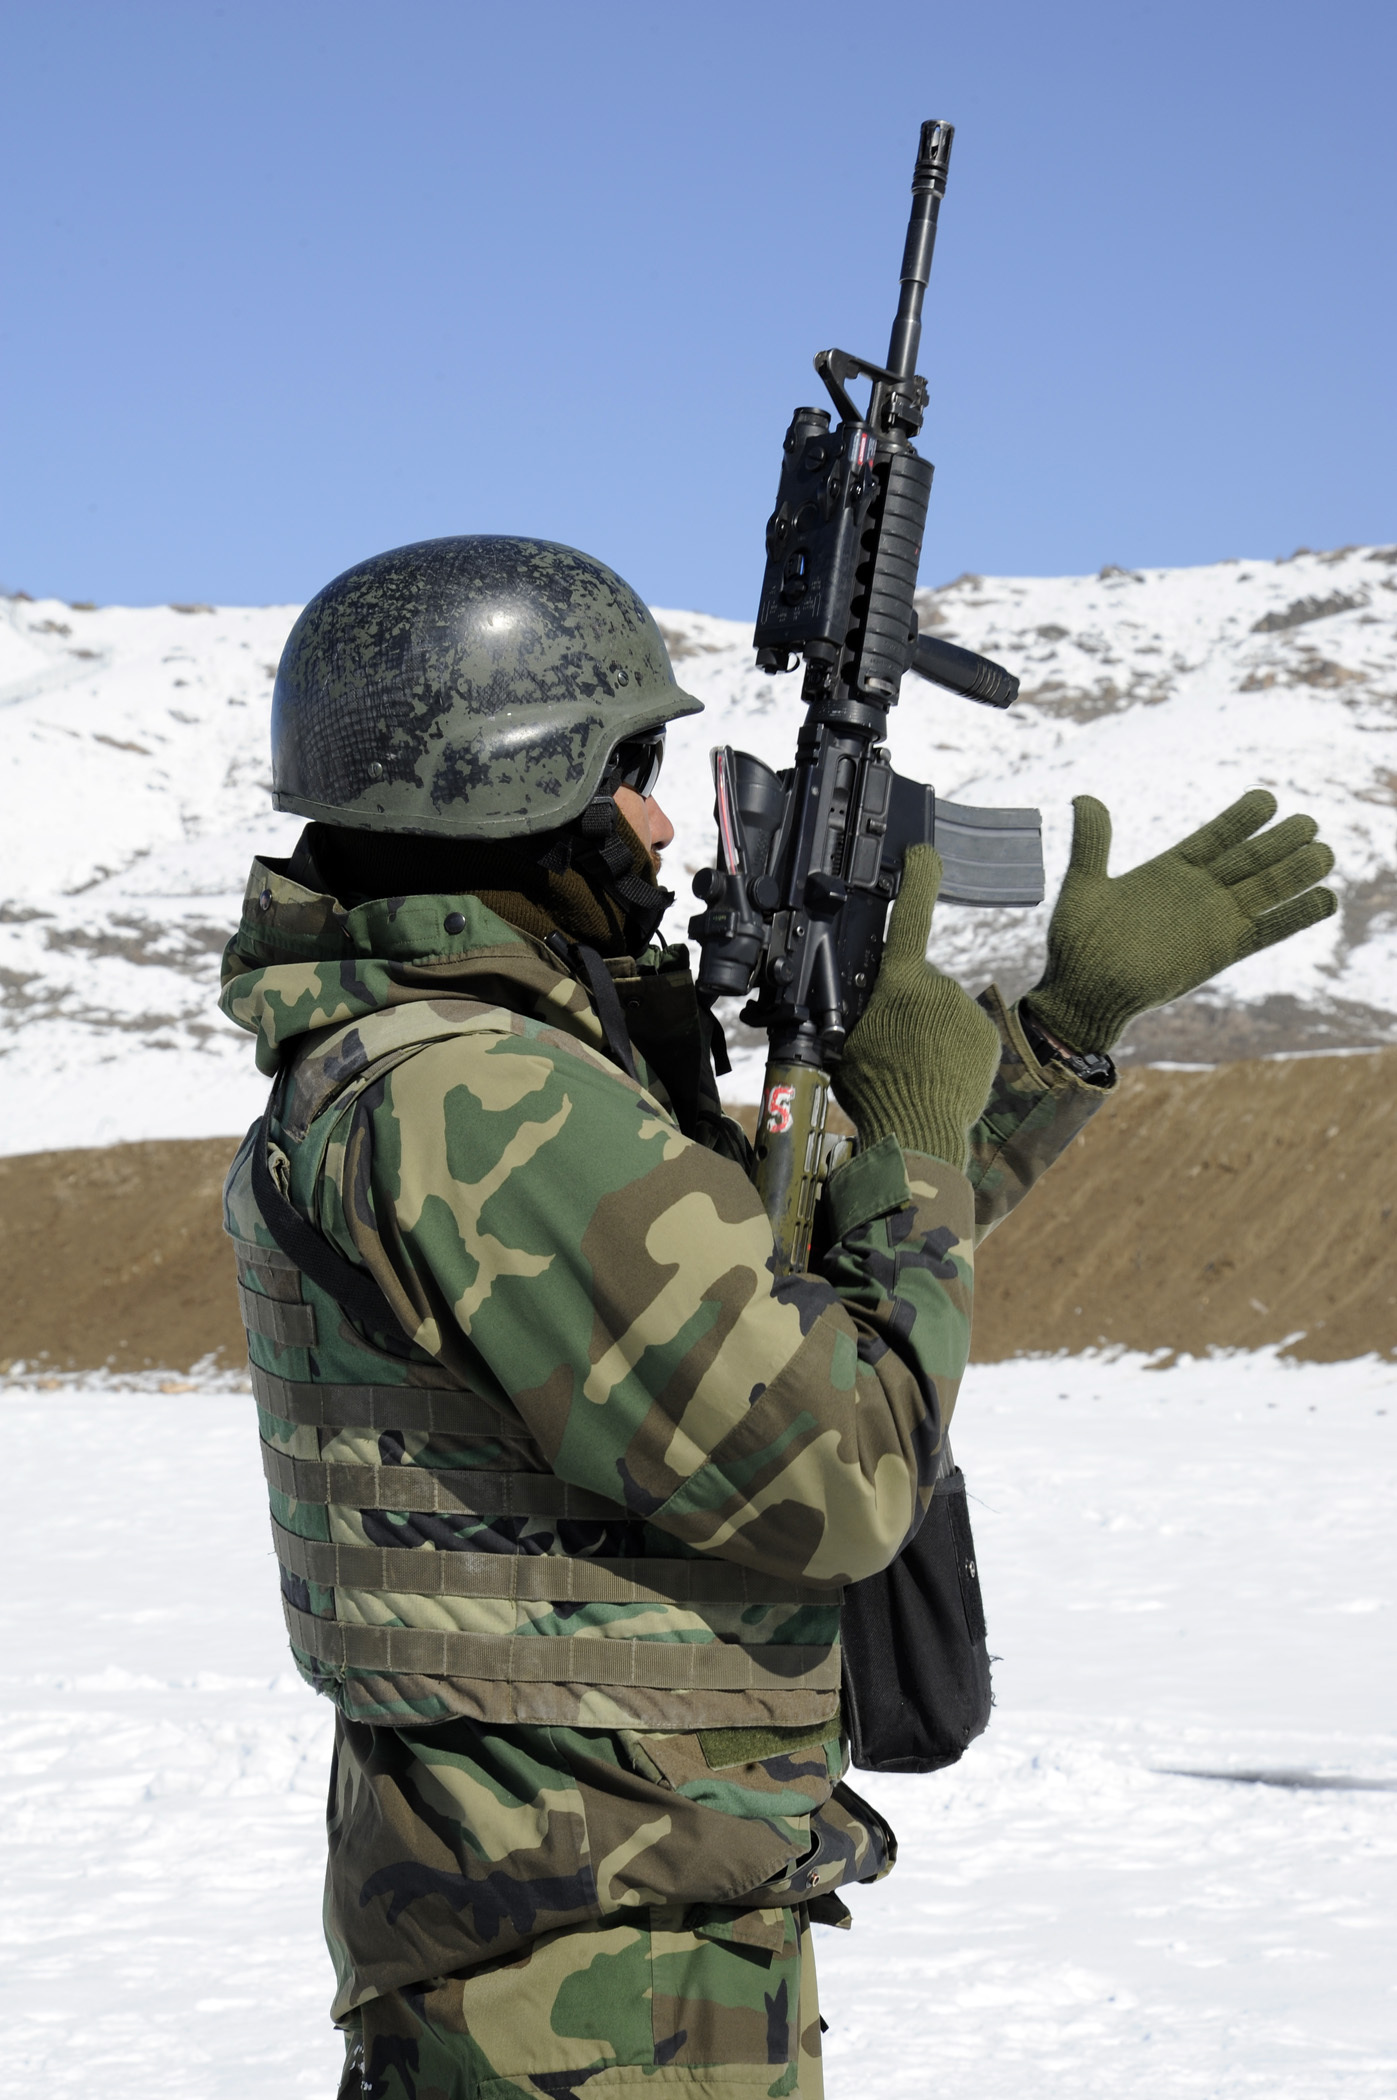 Afghan National Army commandos battle drills 120228-N-MF277-045.jpg